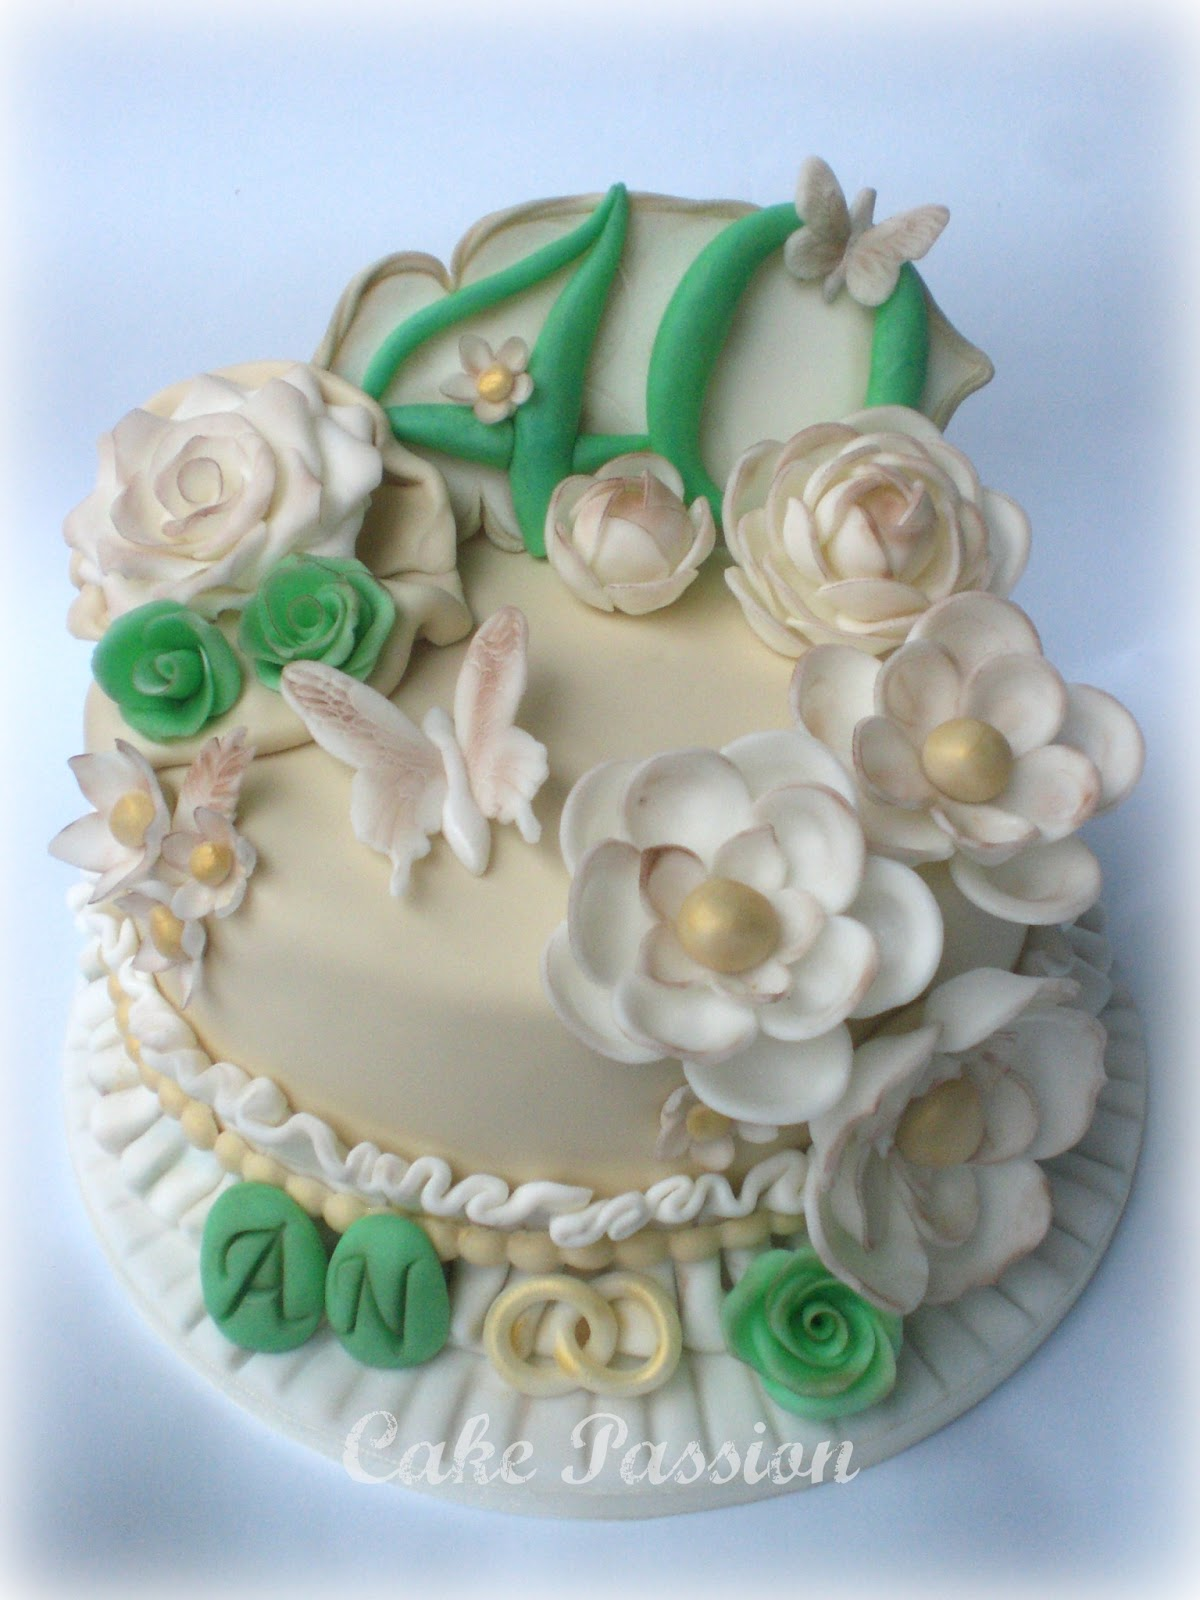 Preferenza Cake Passion: Wedding Emerald - 40th Wedding Anniversary IF27